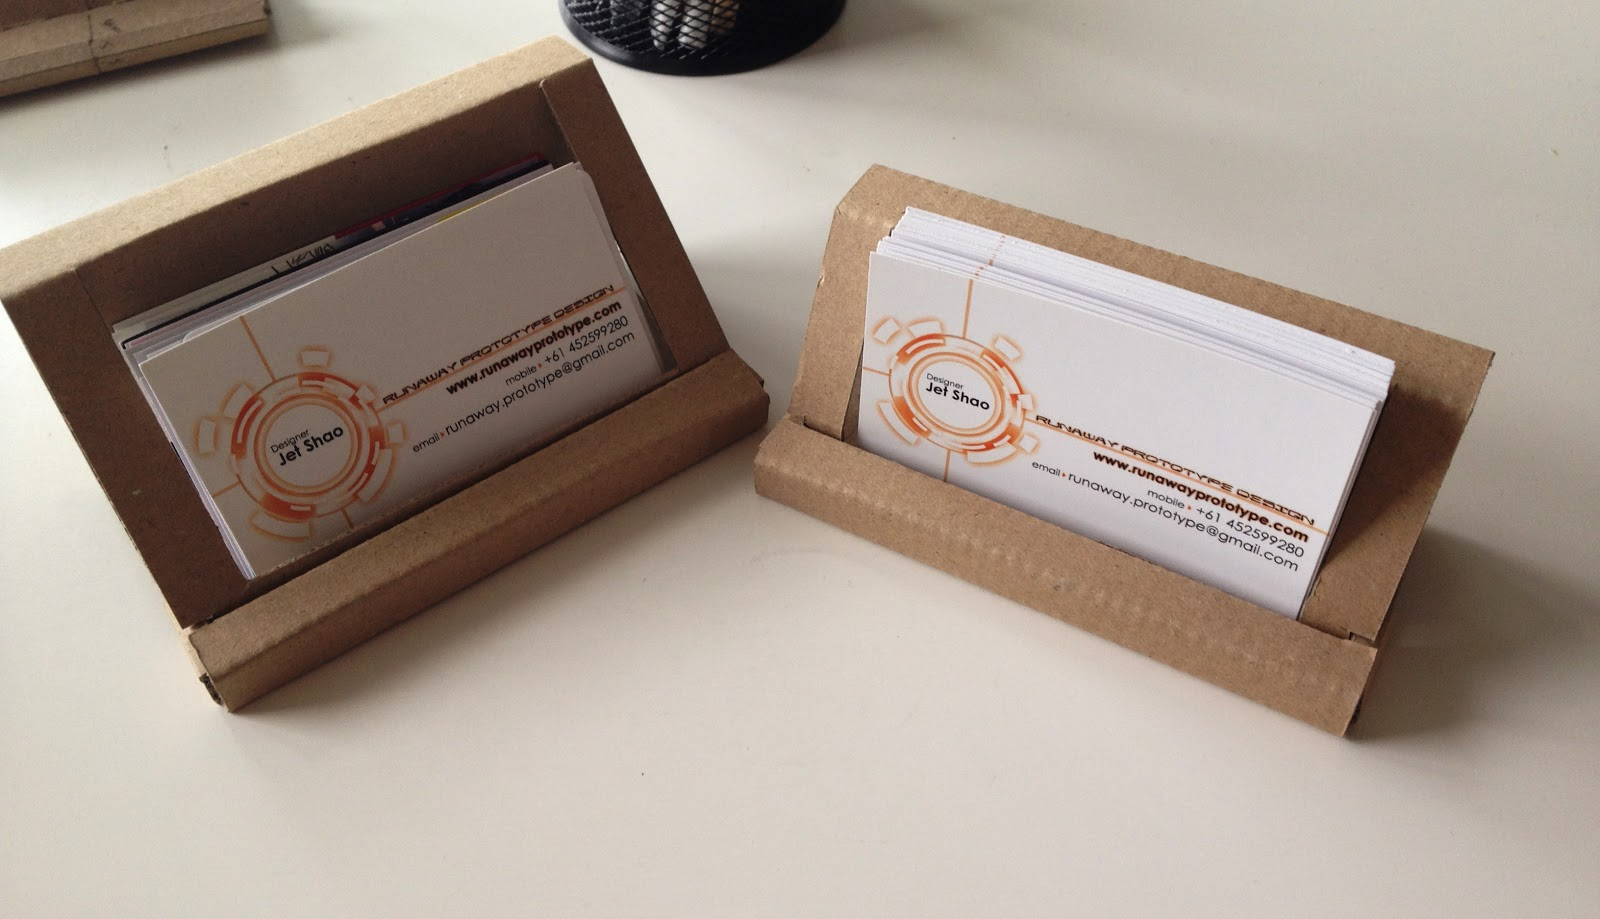 Cardboard business cards unlimitedgamers cardboard business card holders best business cards fbccfo Images